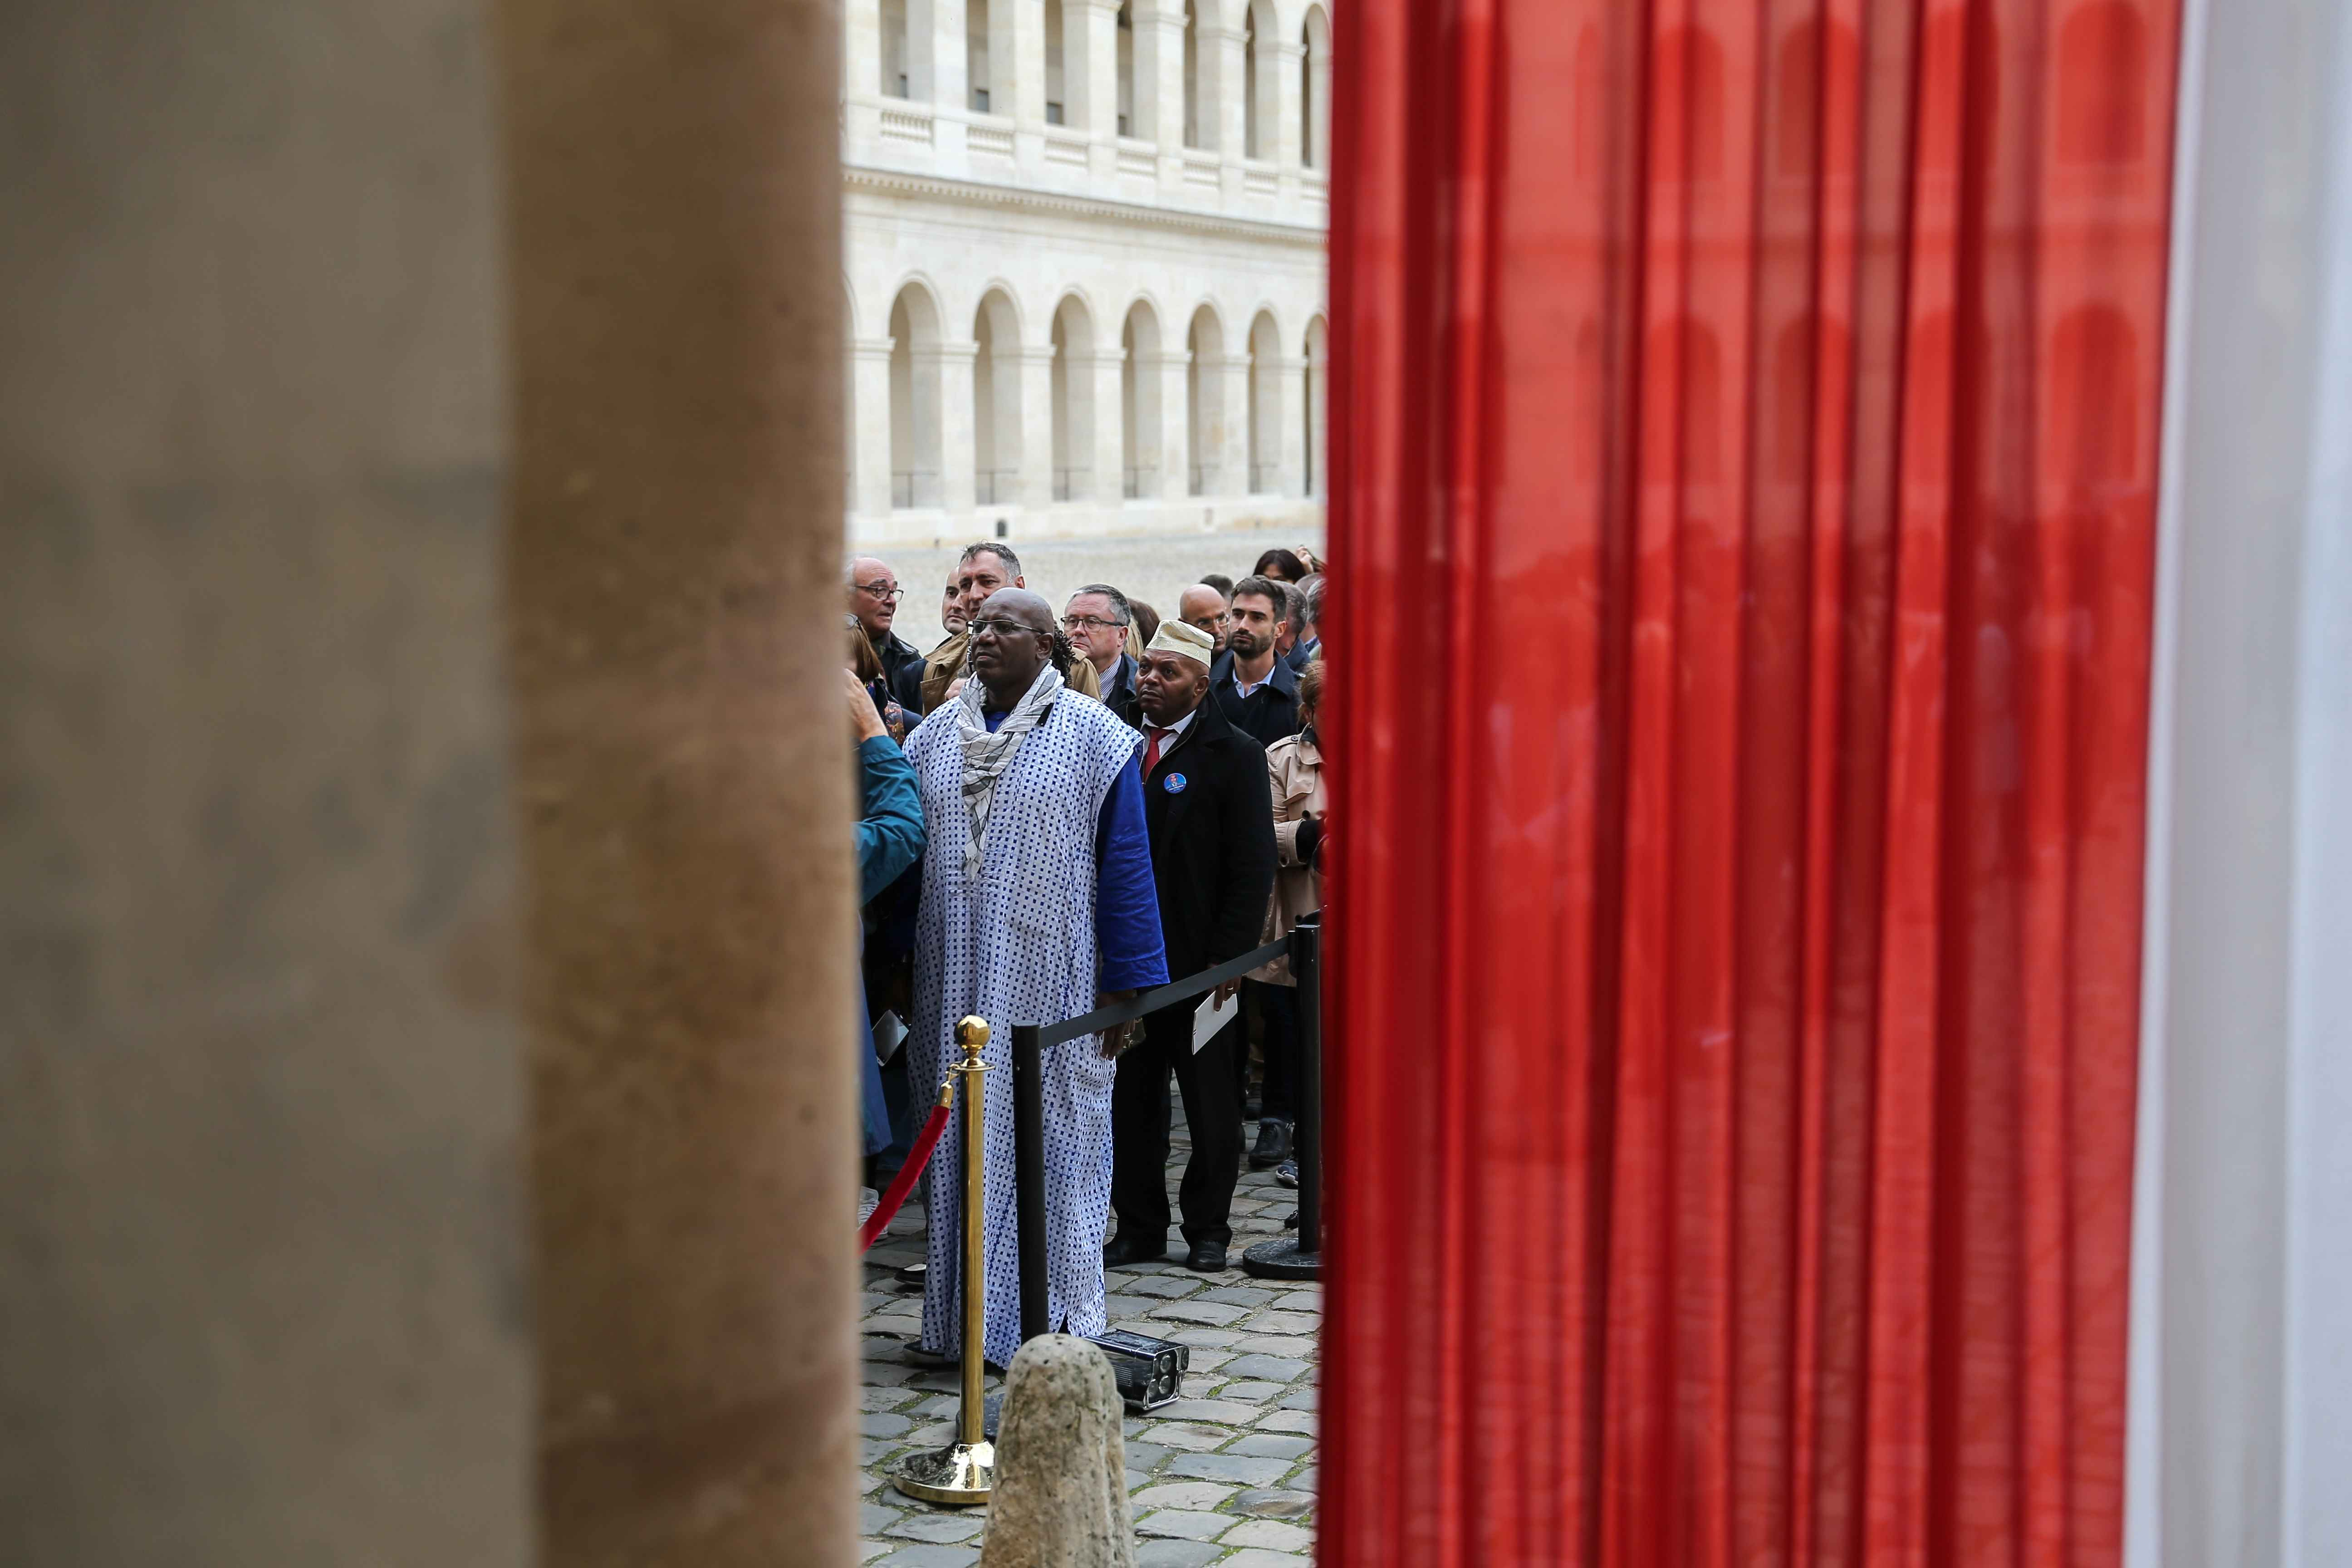 People queue to say a final farewell to former French President Jacques Chirac as the coffin lie in state at the Saint-Louis-des-Invalides cathedral at the Invalides memorial complex in central Paris on September 29, 2019. Jacques Chirac died on September